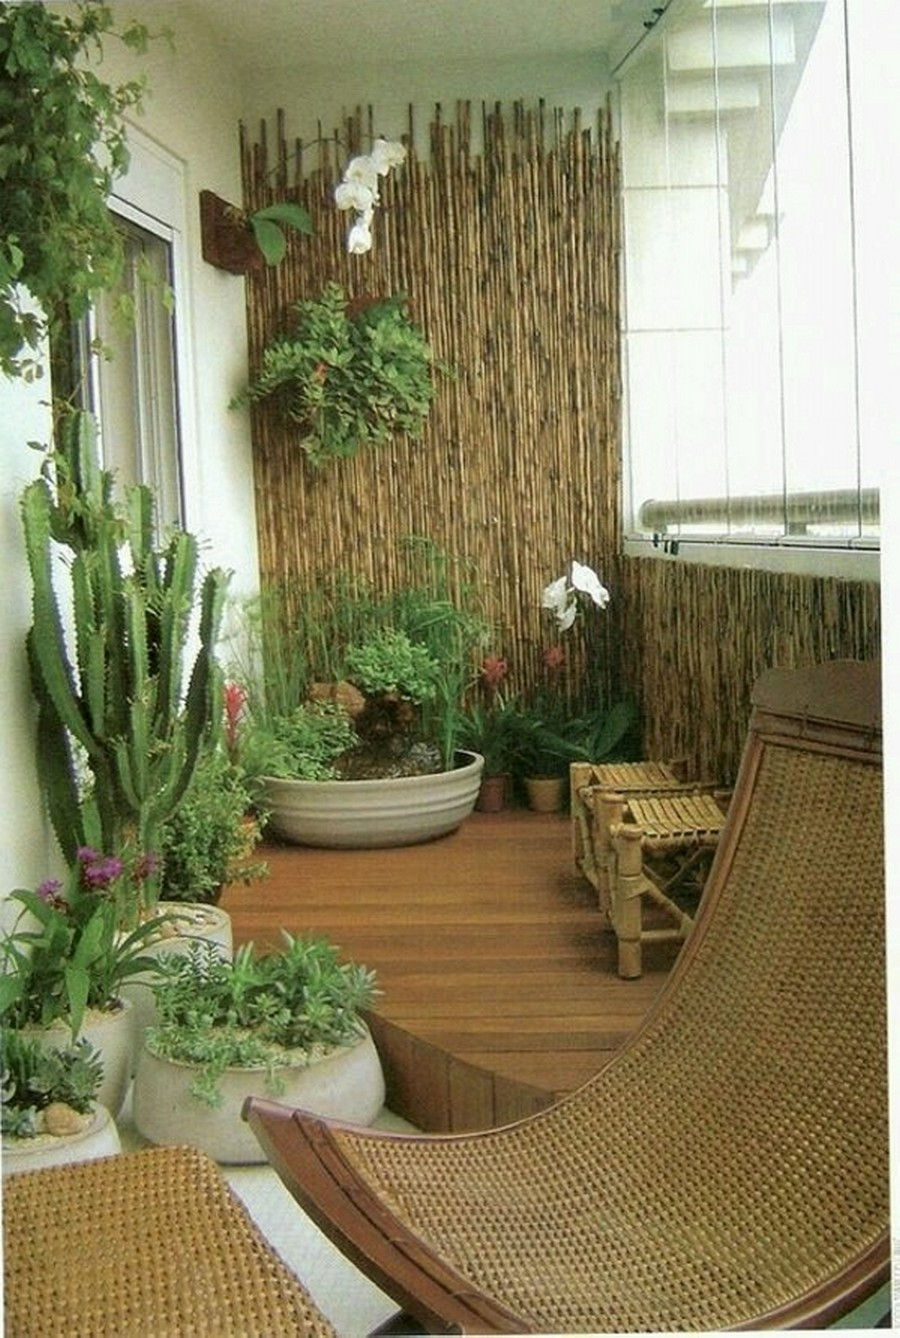 10 clever ways to decorate your balcony area recycled things for Outdoor balcony decorating ideas